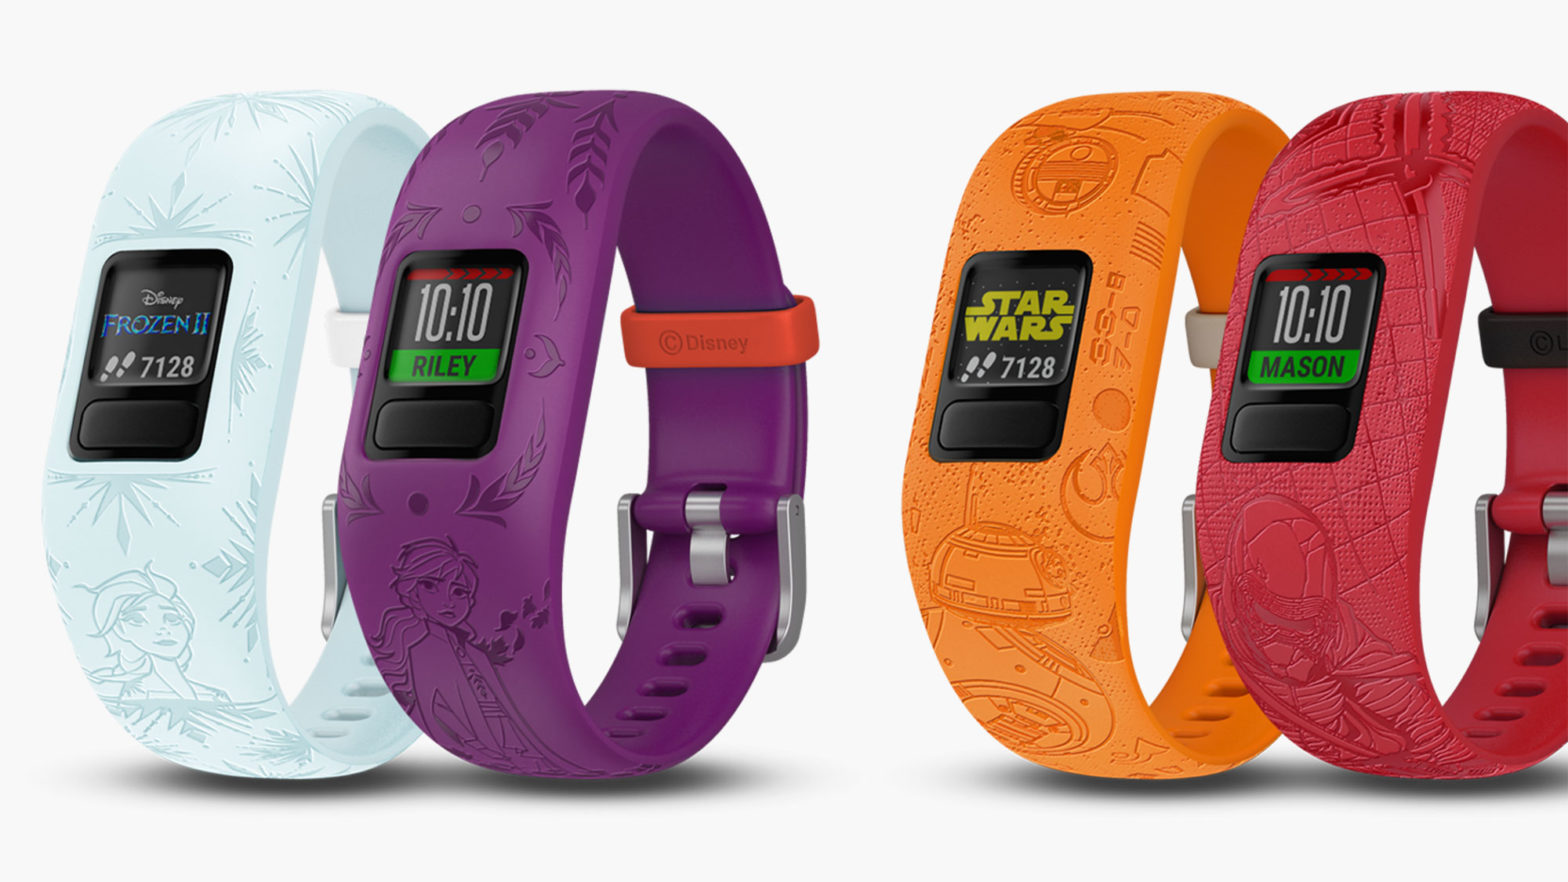 Garmin Frozen 2 and Star Wars Fitness Trackers